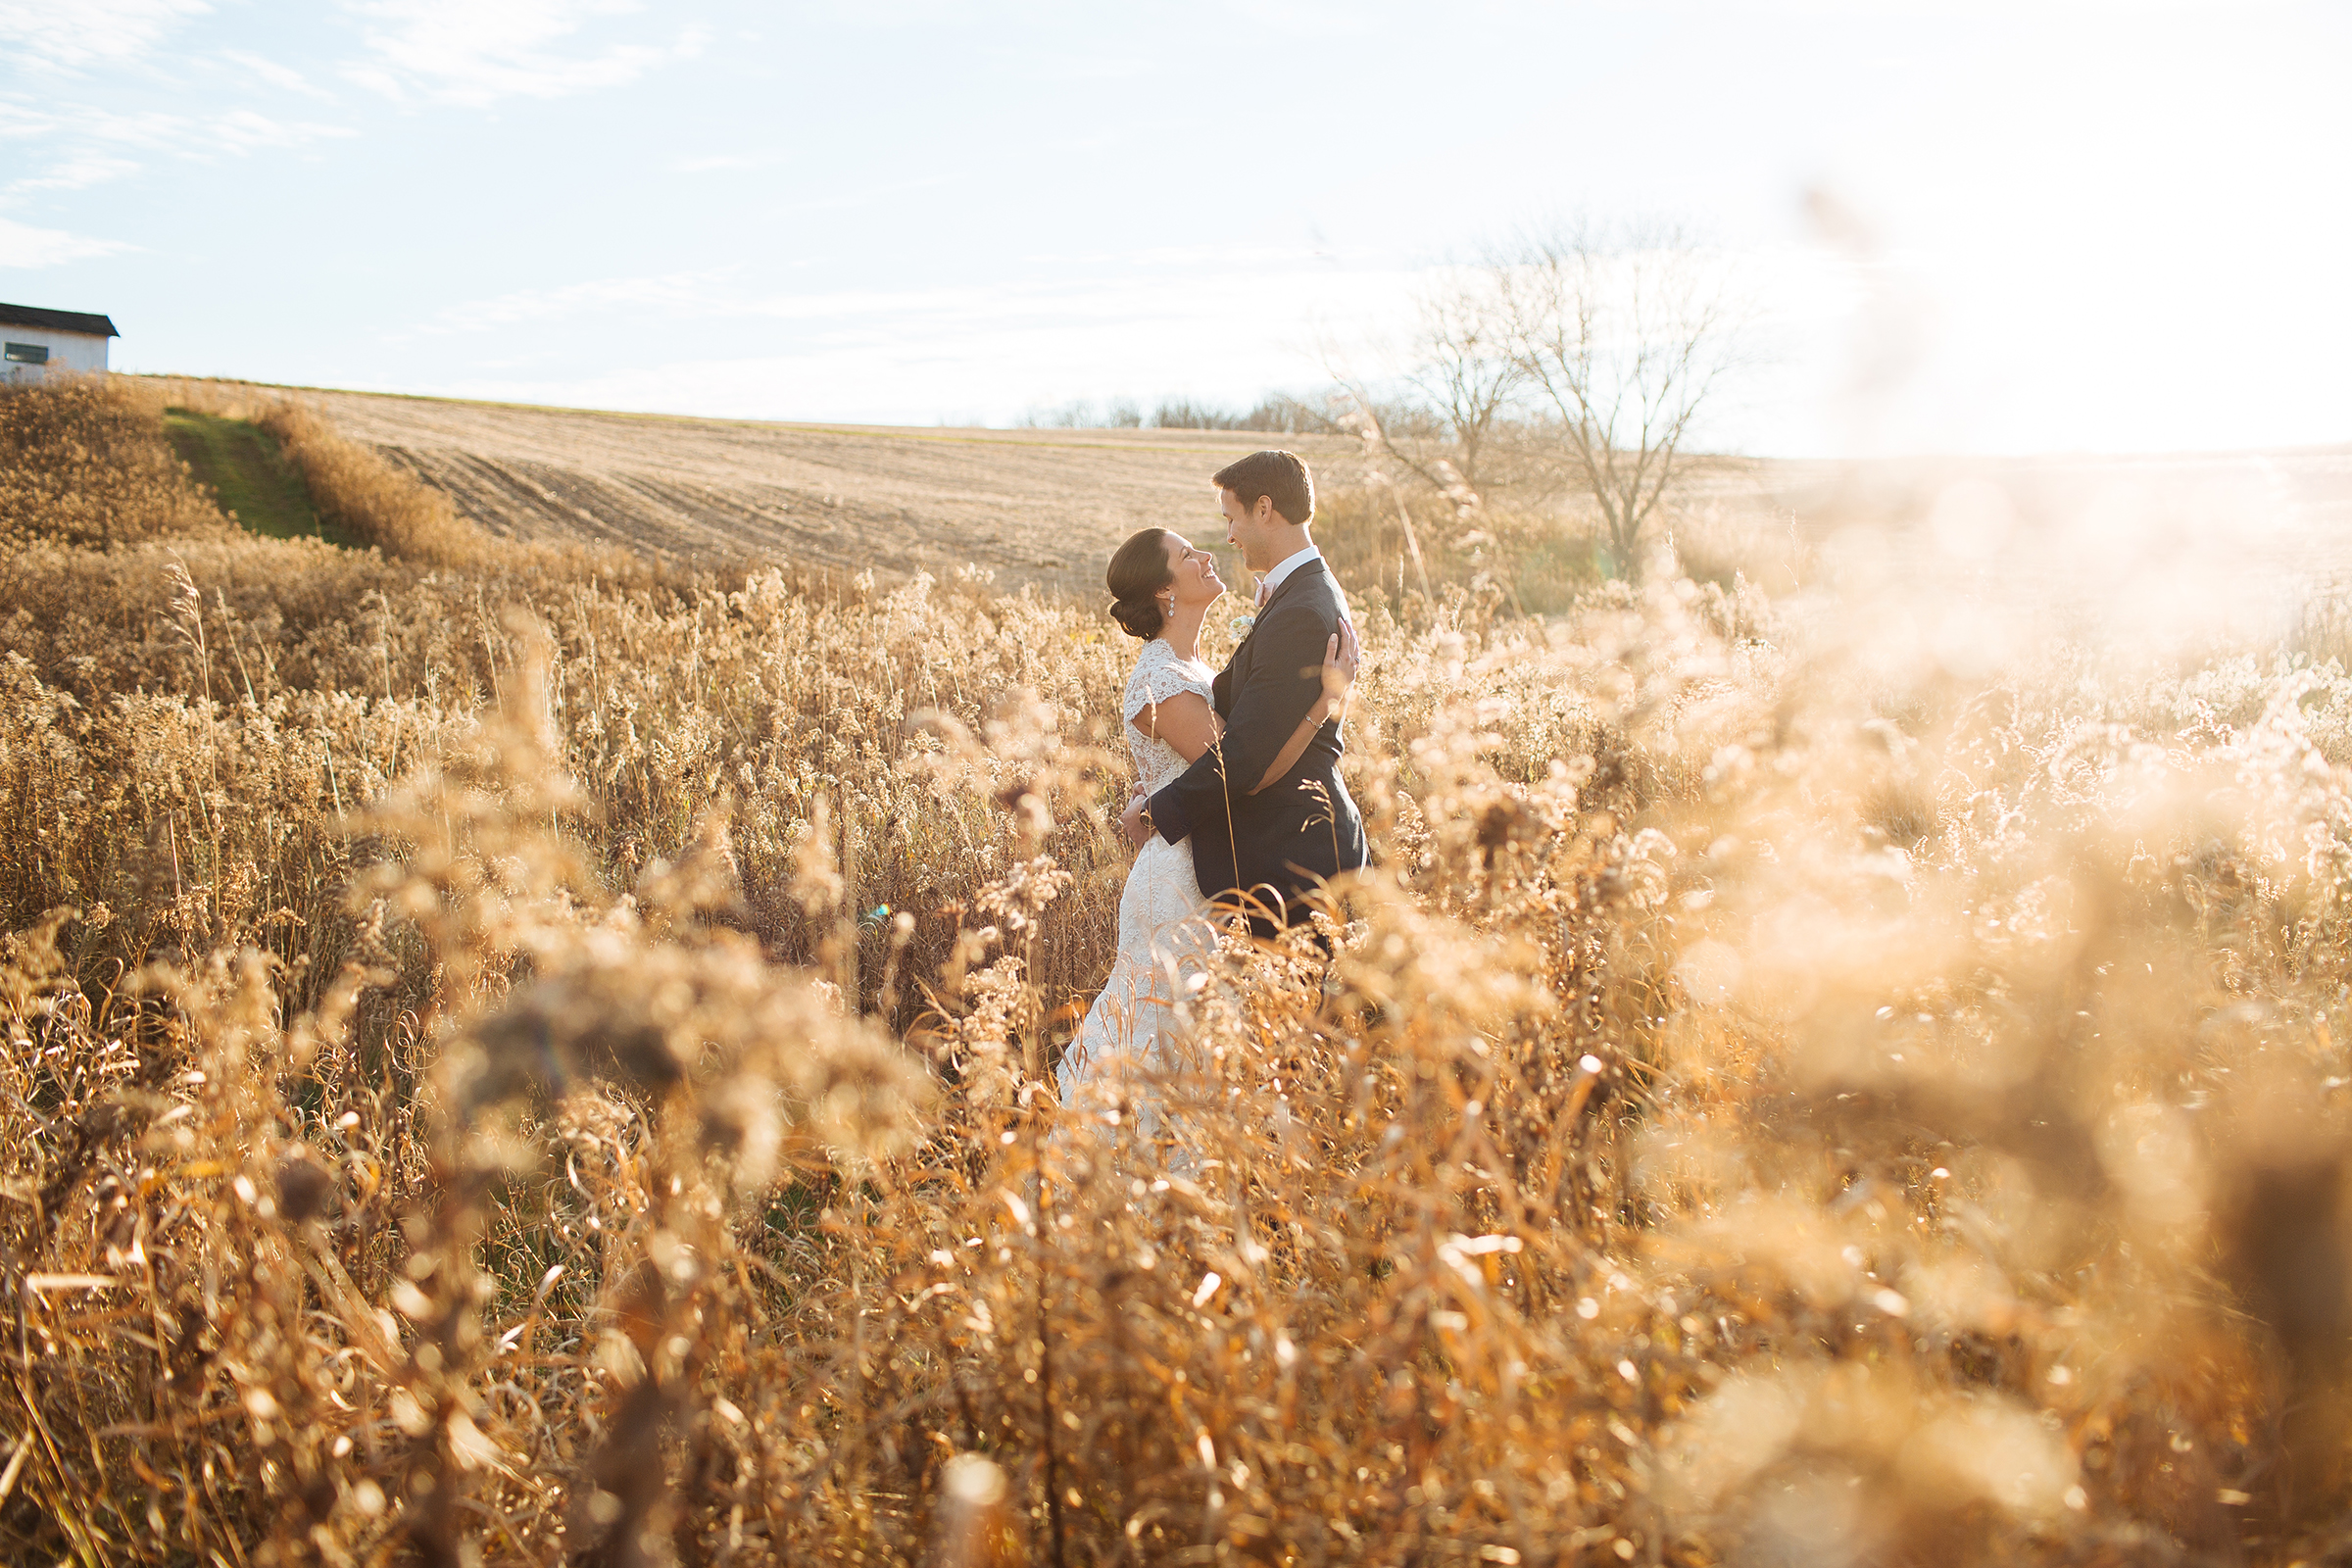 Alyssa Lee Minneapolis Wedding Photographer | Sixpence Standard wedding blog | bride and groom kissing in a field